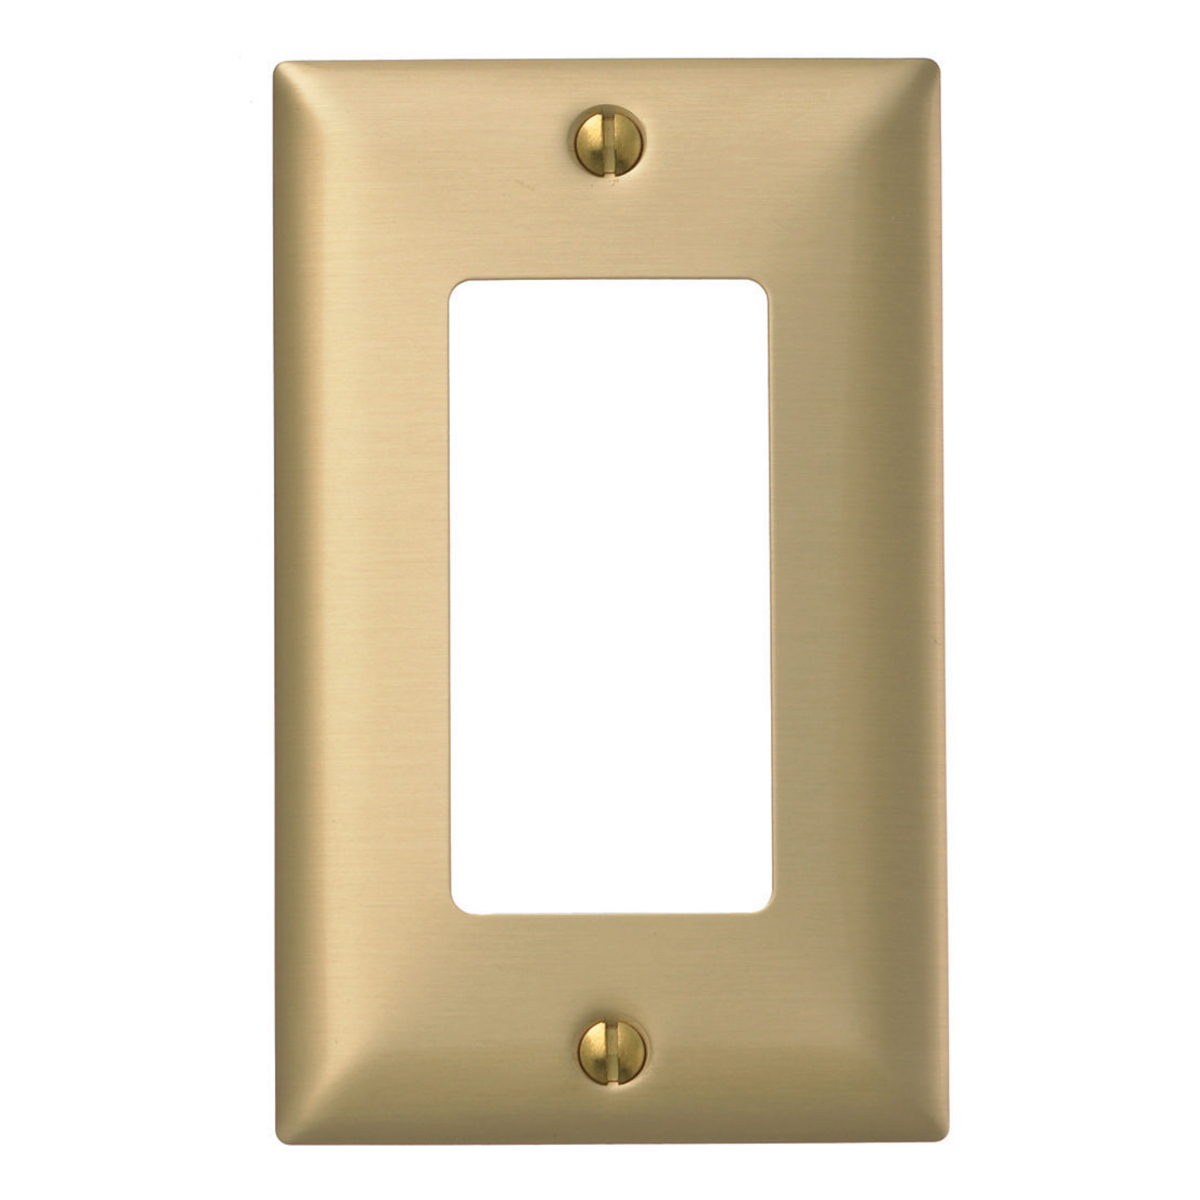 Hubbell SB26 WALLPLATE 1-G, STYLE OPENING, BRS